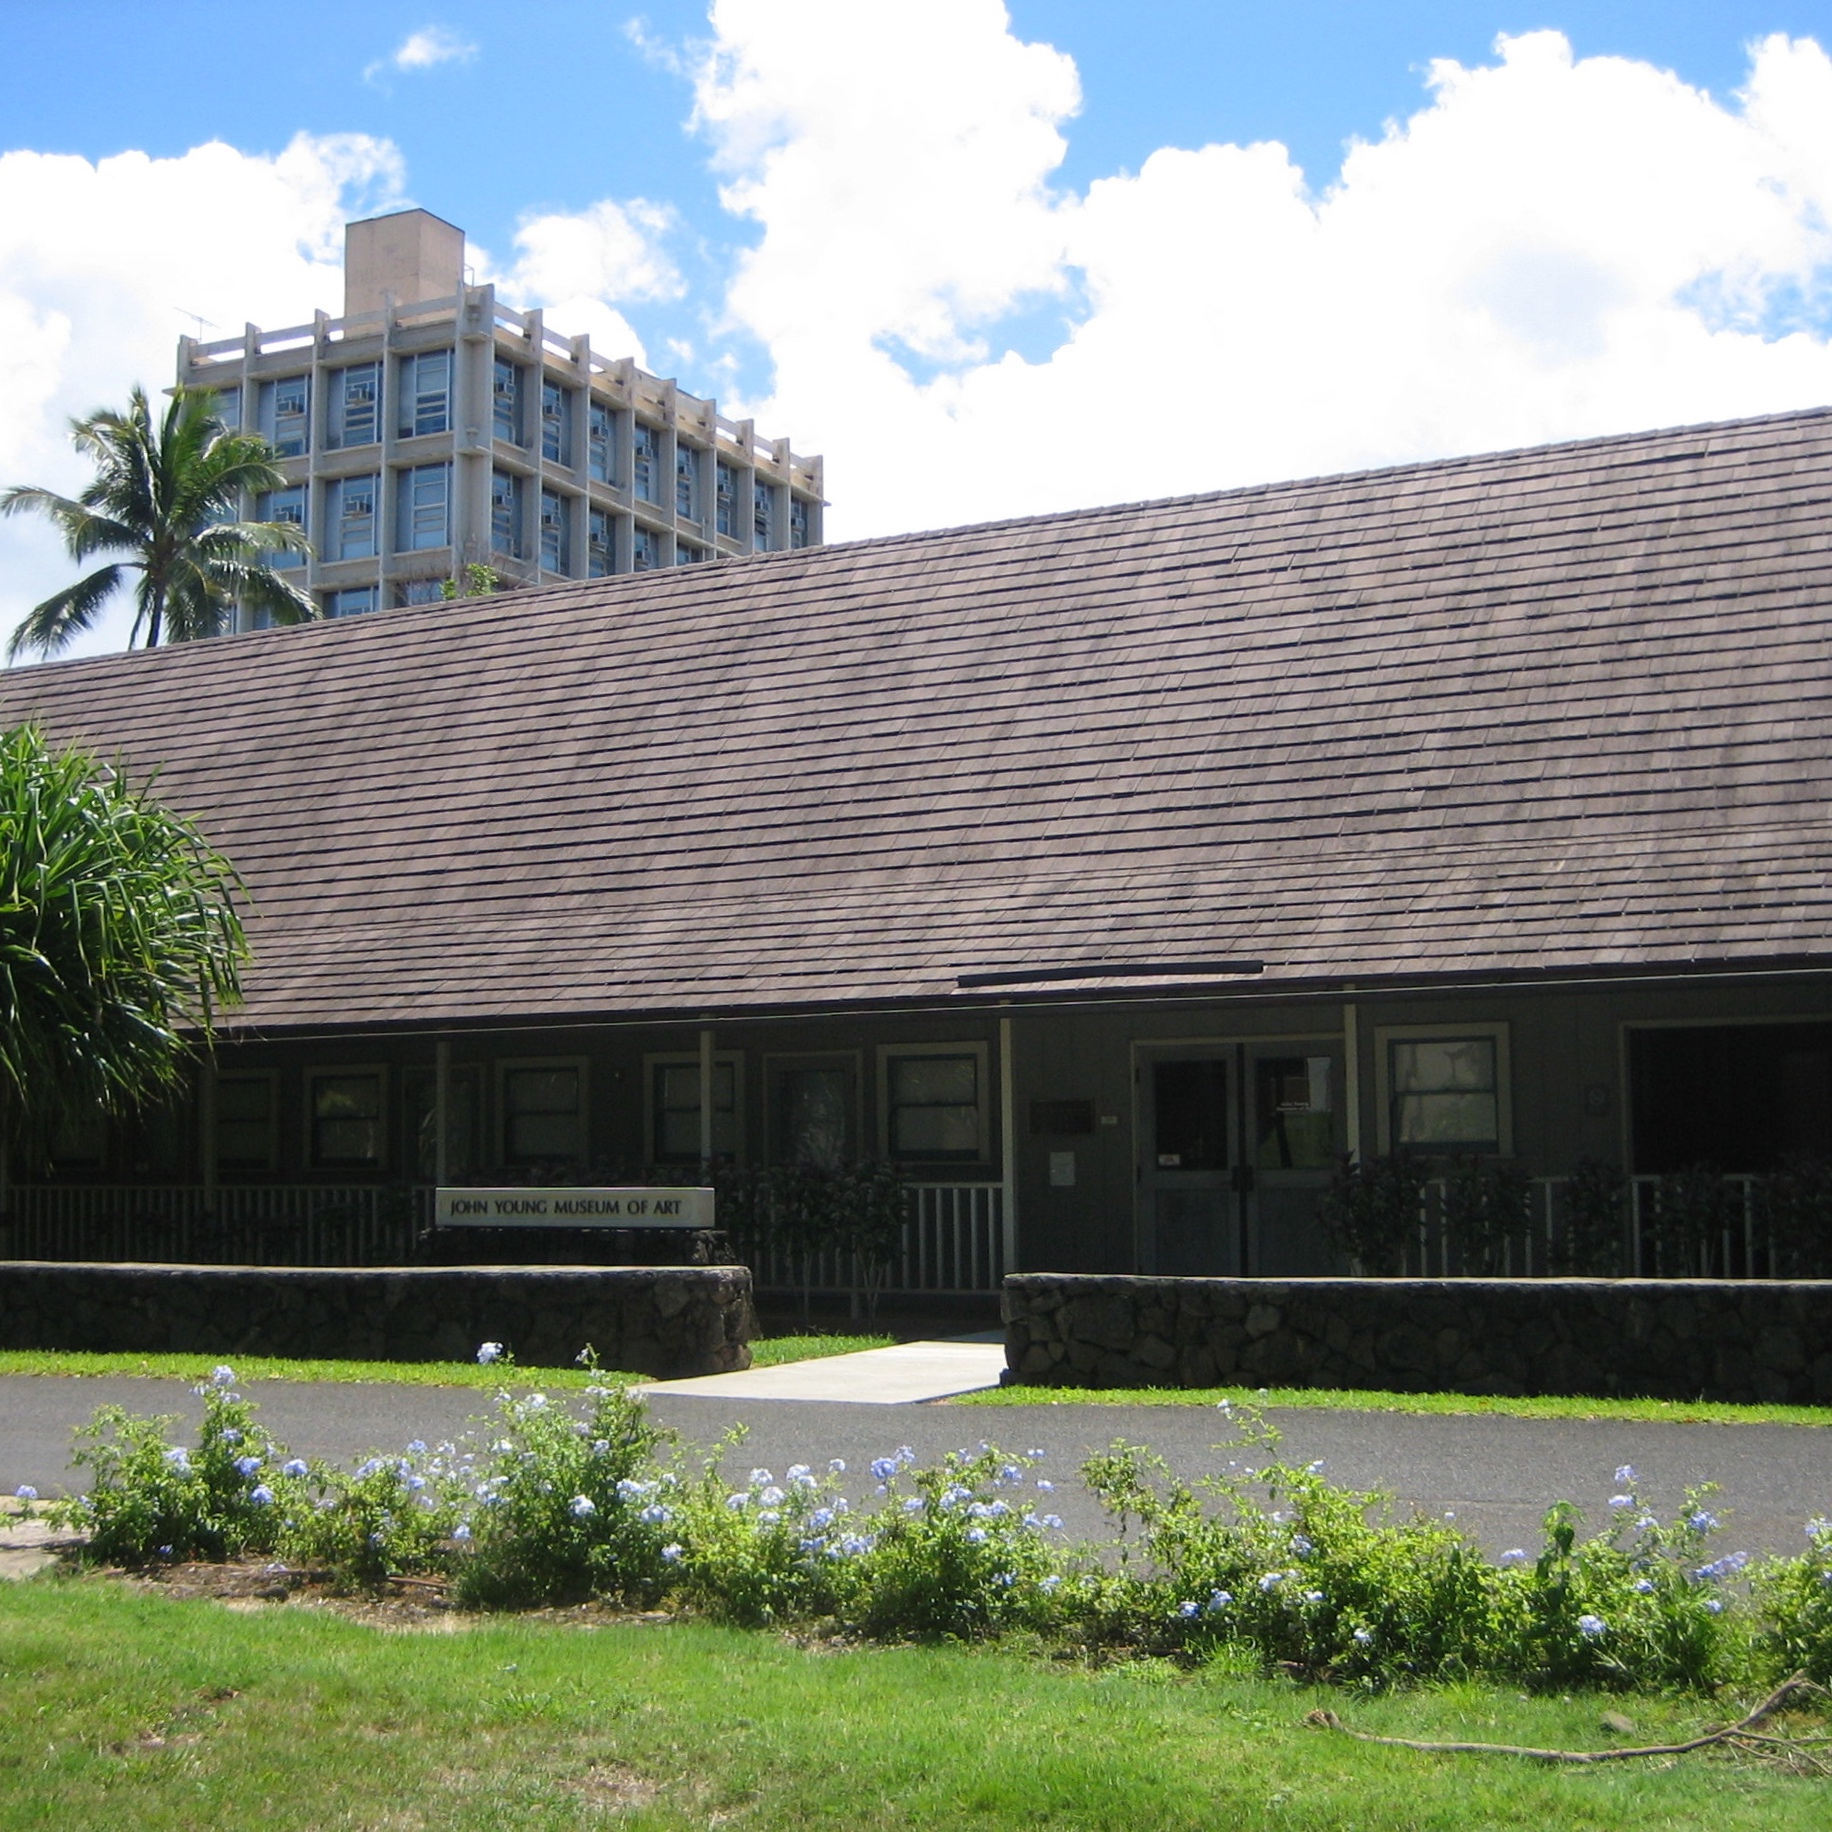 John Young Museum of Art (UH)